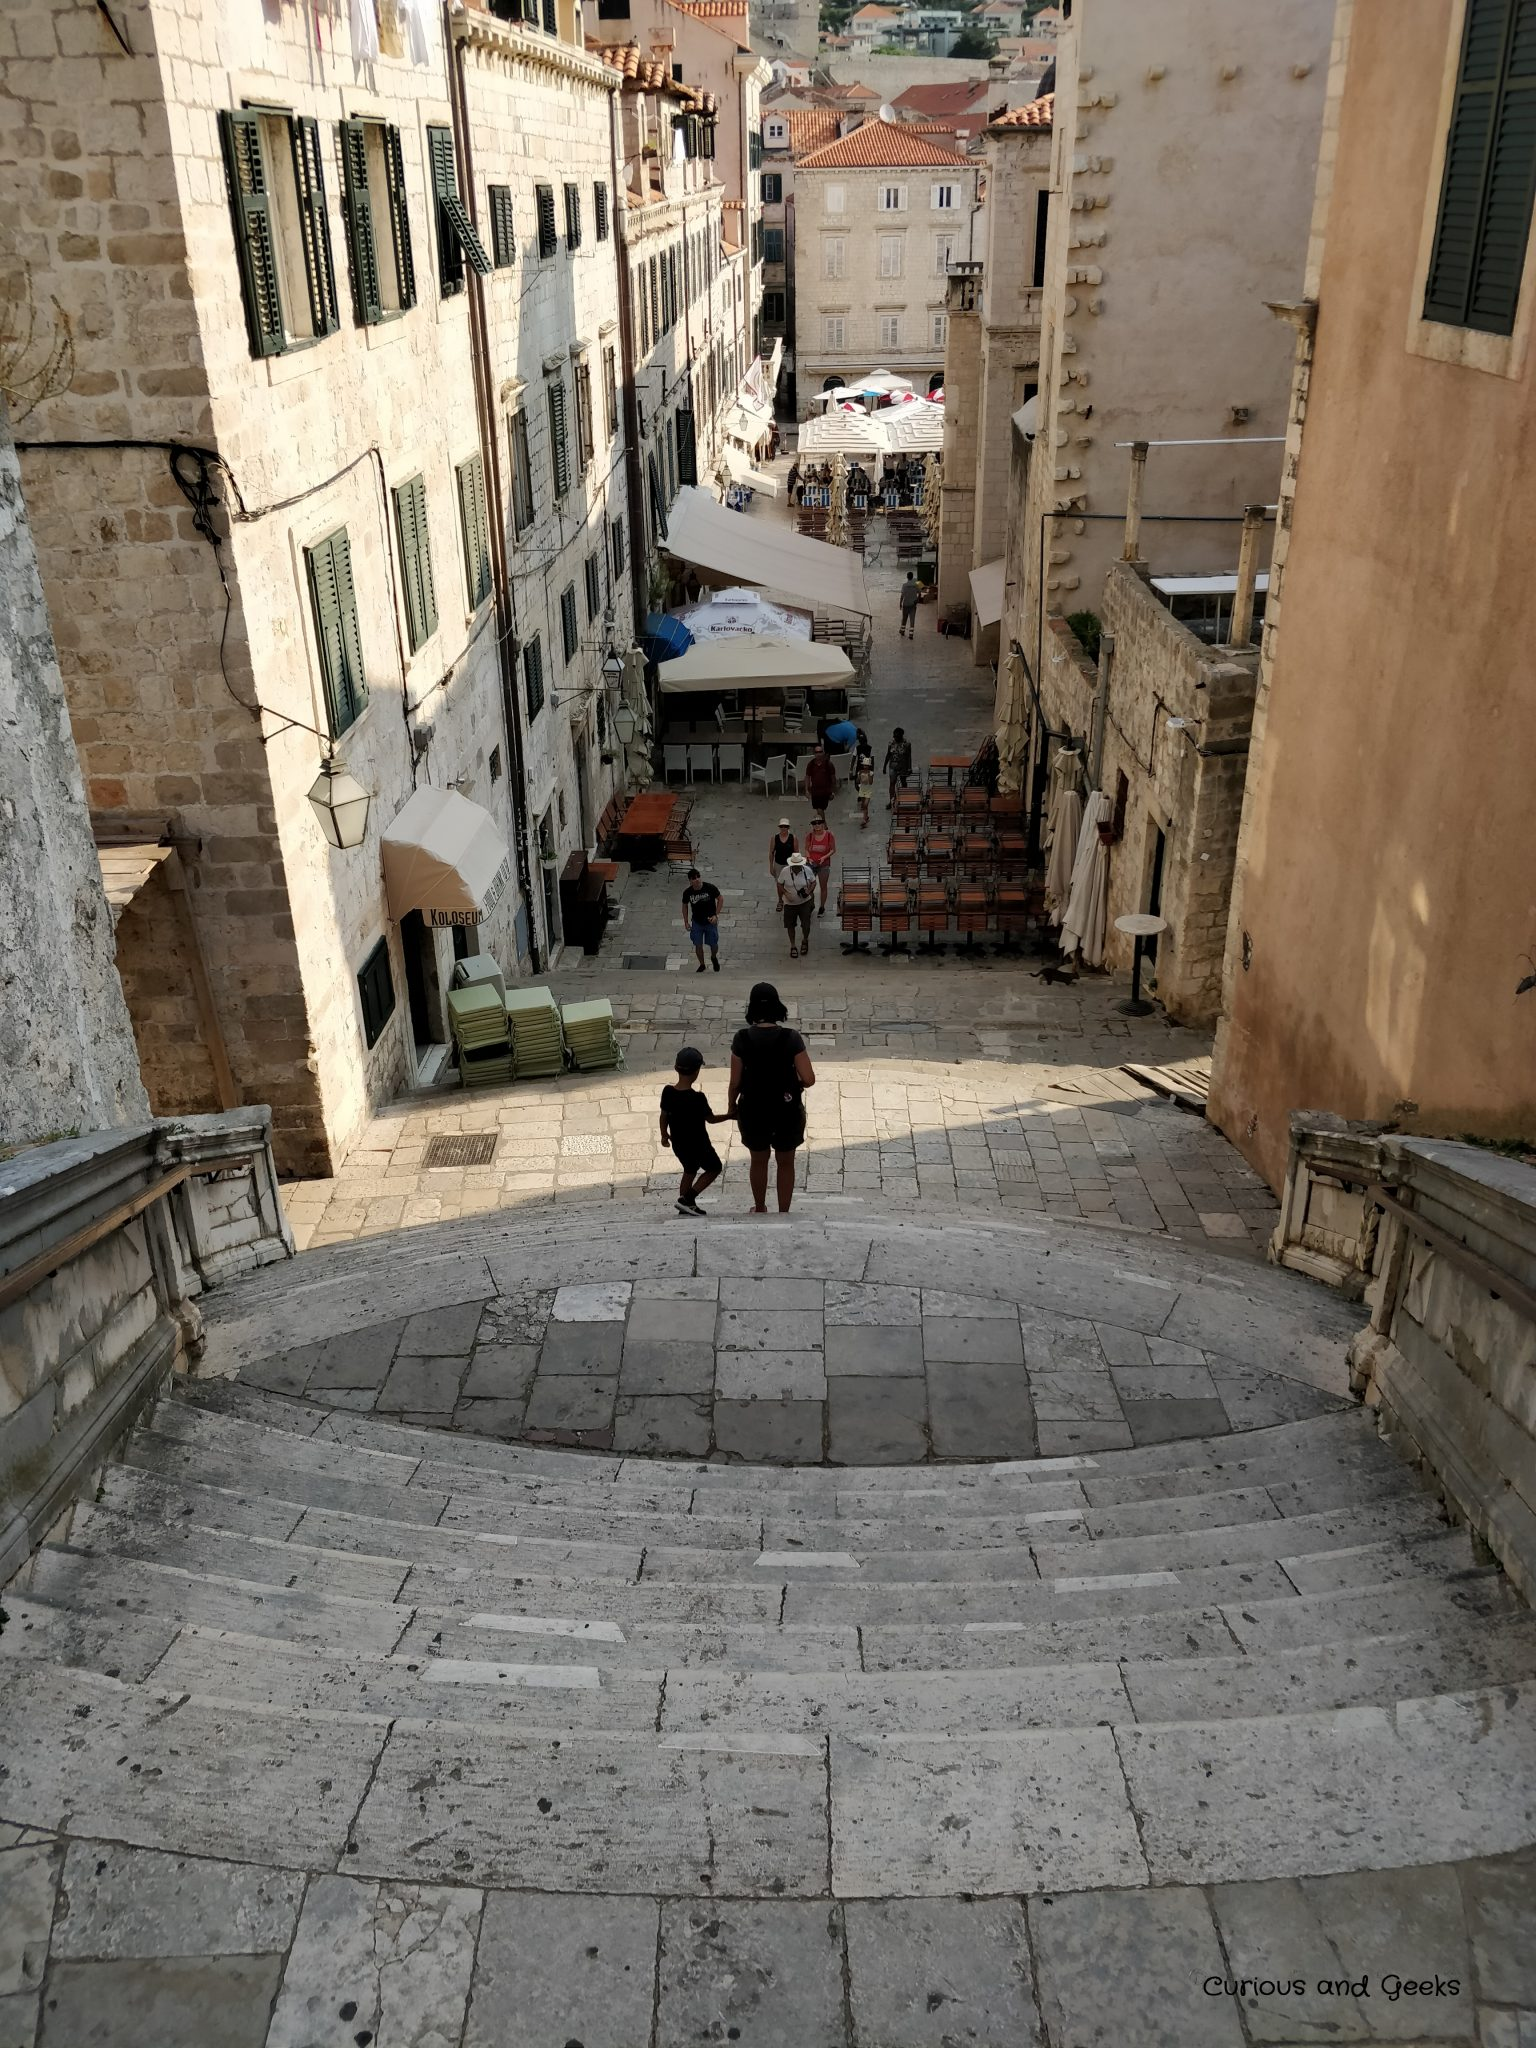 The Jesuit Staircase in Dubrovnik Old Town - filming location for s05e10 of Game of Thrones